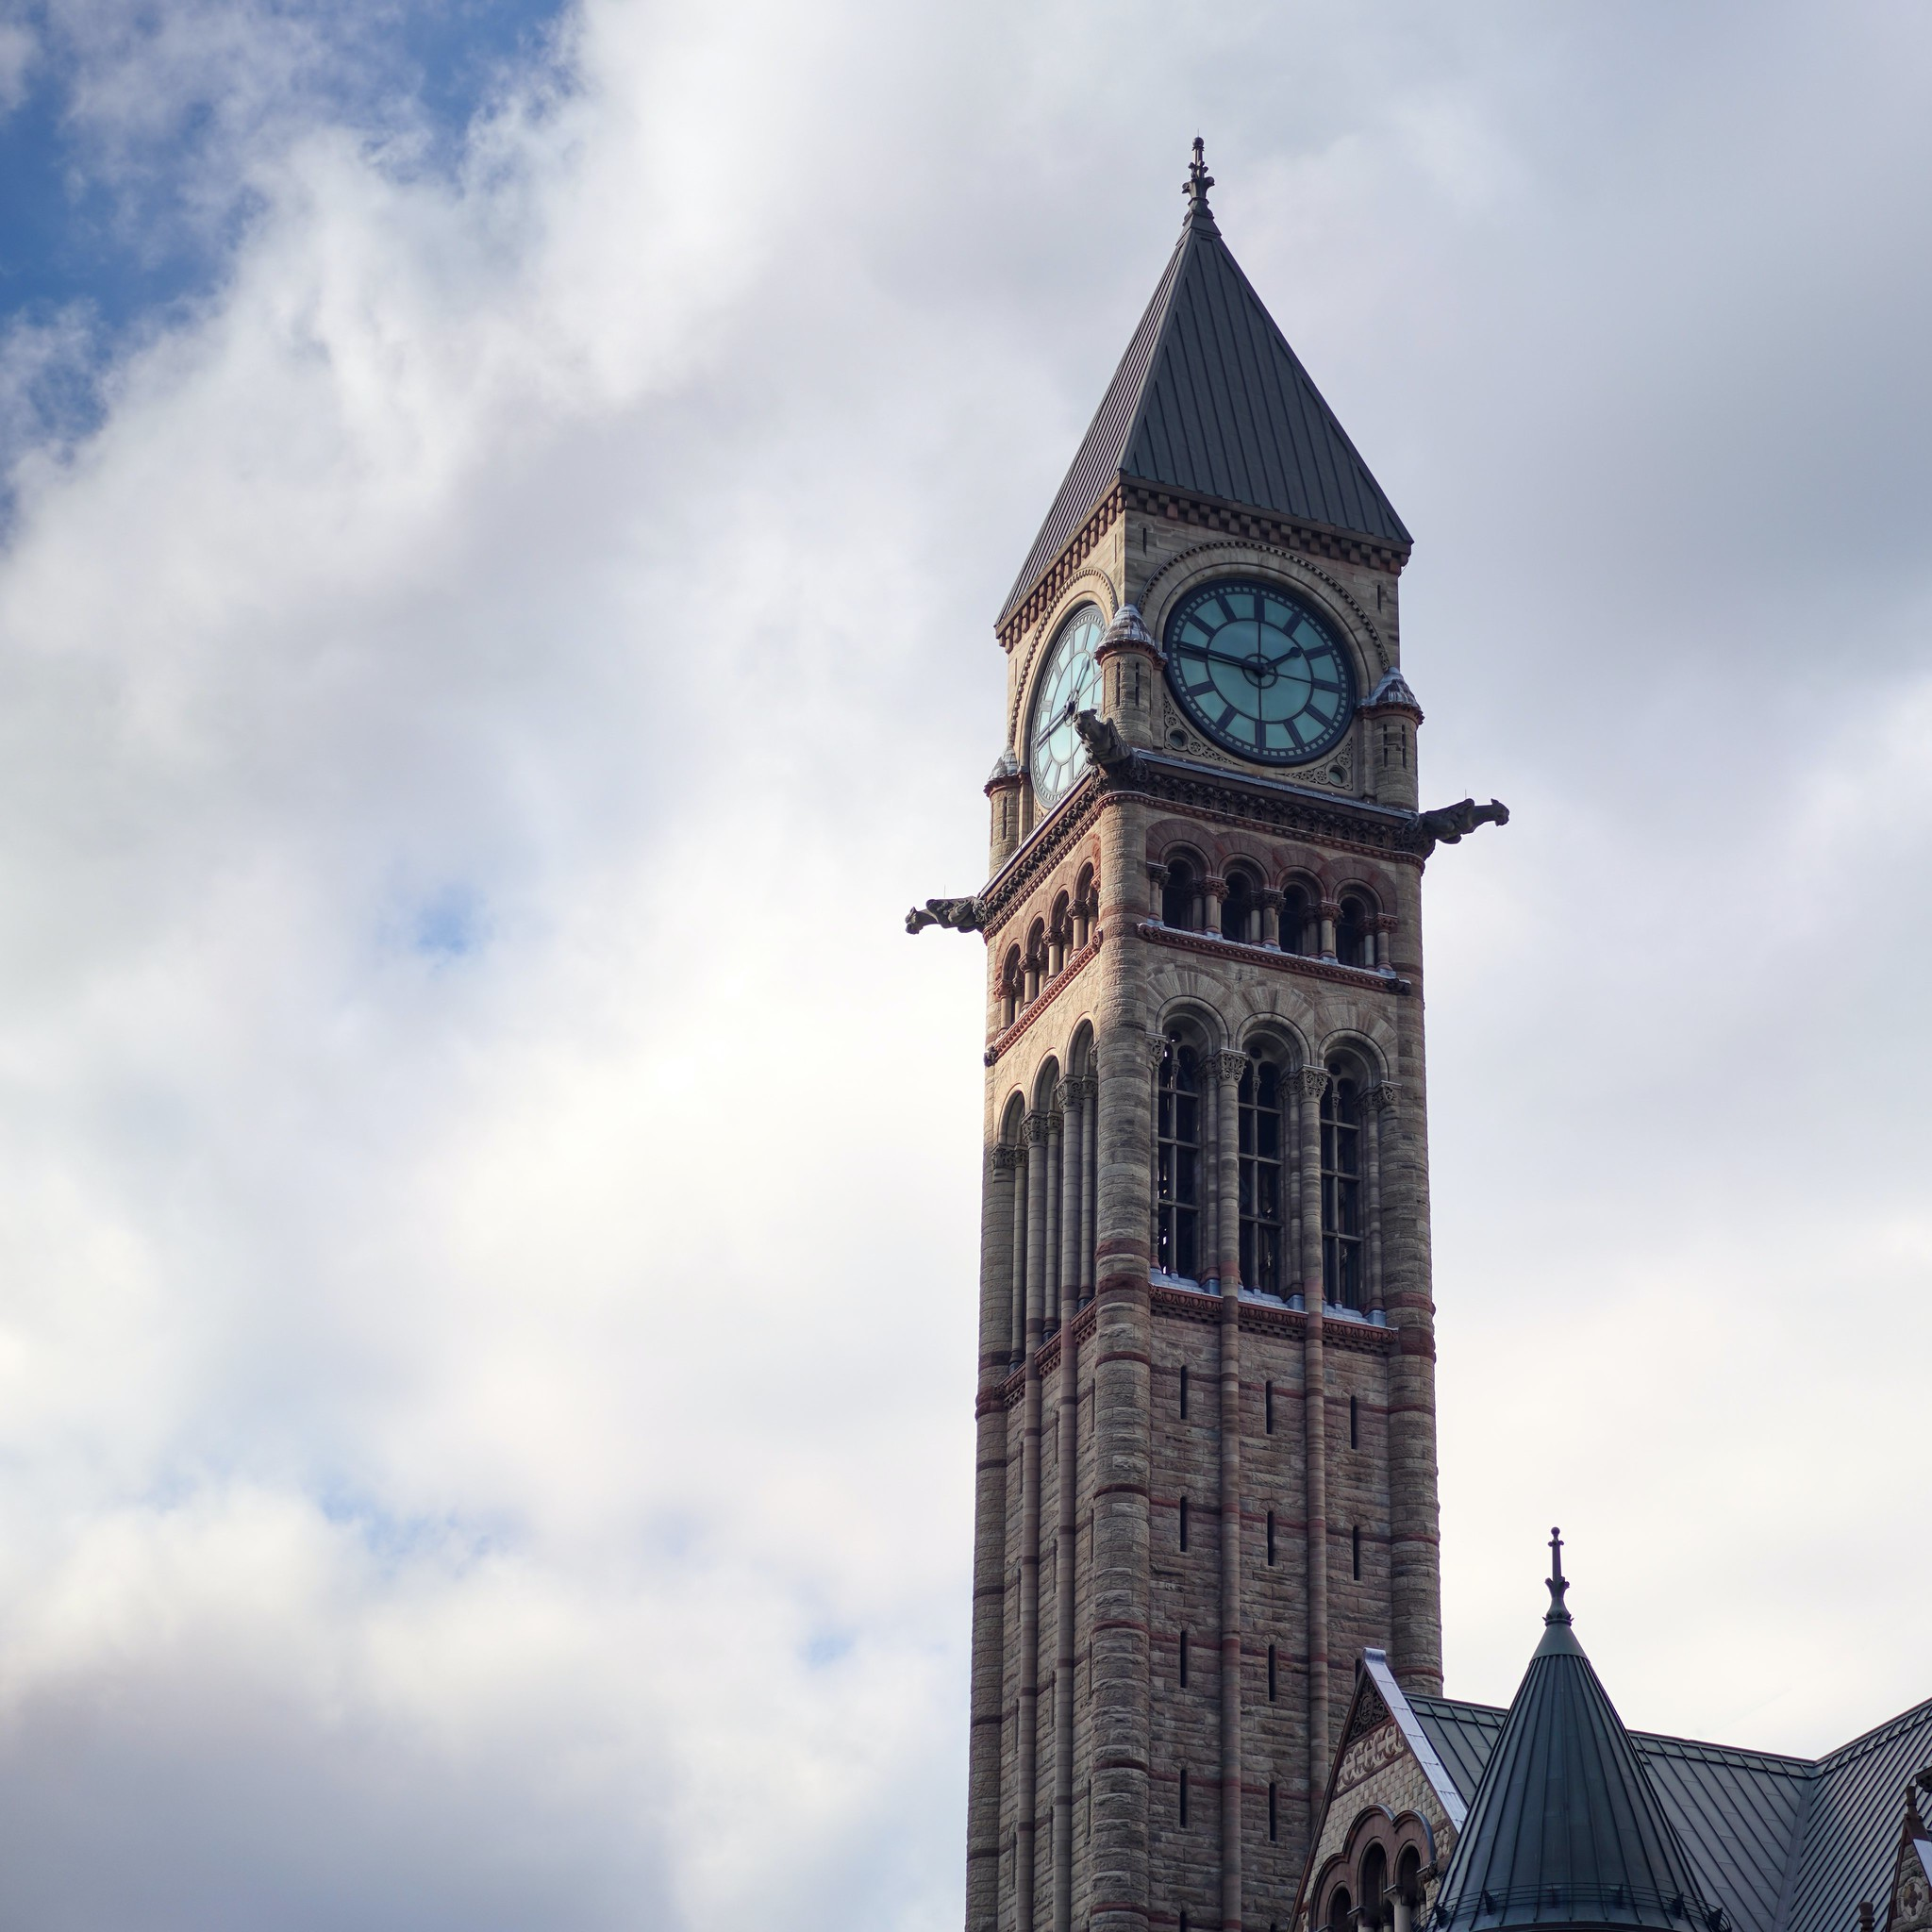 Clocktower at Old City Hall